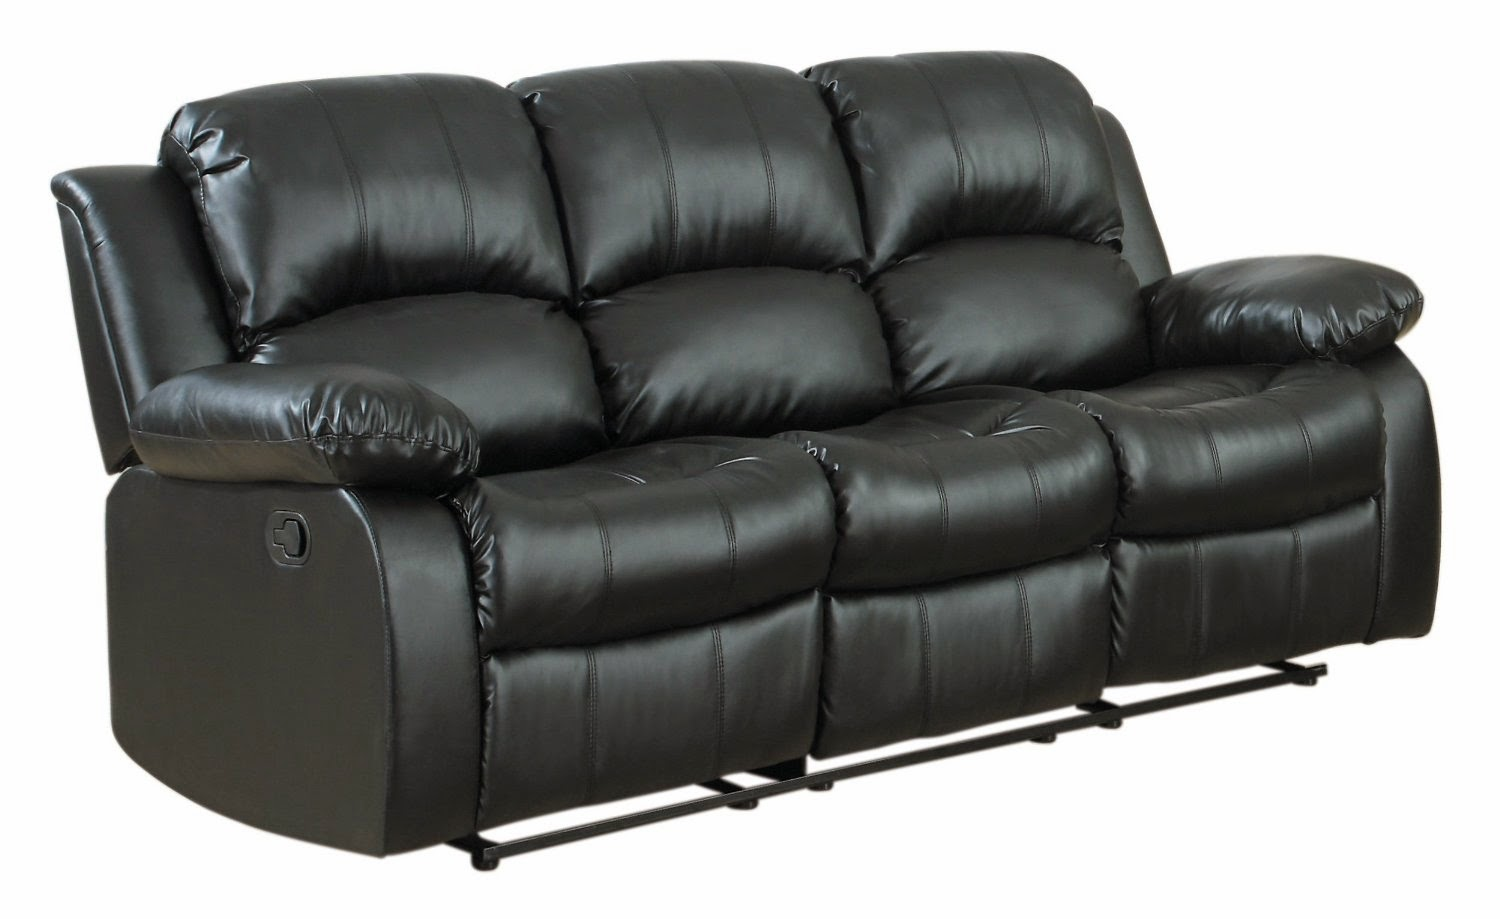 Berkline Leather Reclining Sofa Costco  sc 1 st  Reclining Sofas For Sale - blogger & Reclining Sofas For Sale: Berkline Leather Reclining Sofa Costco islam-shia.org